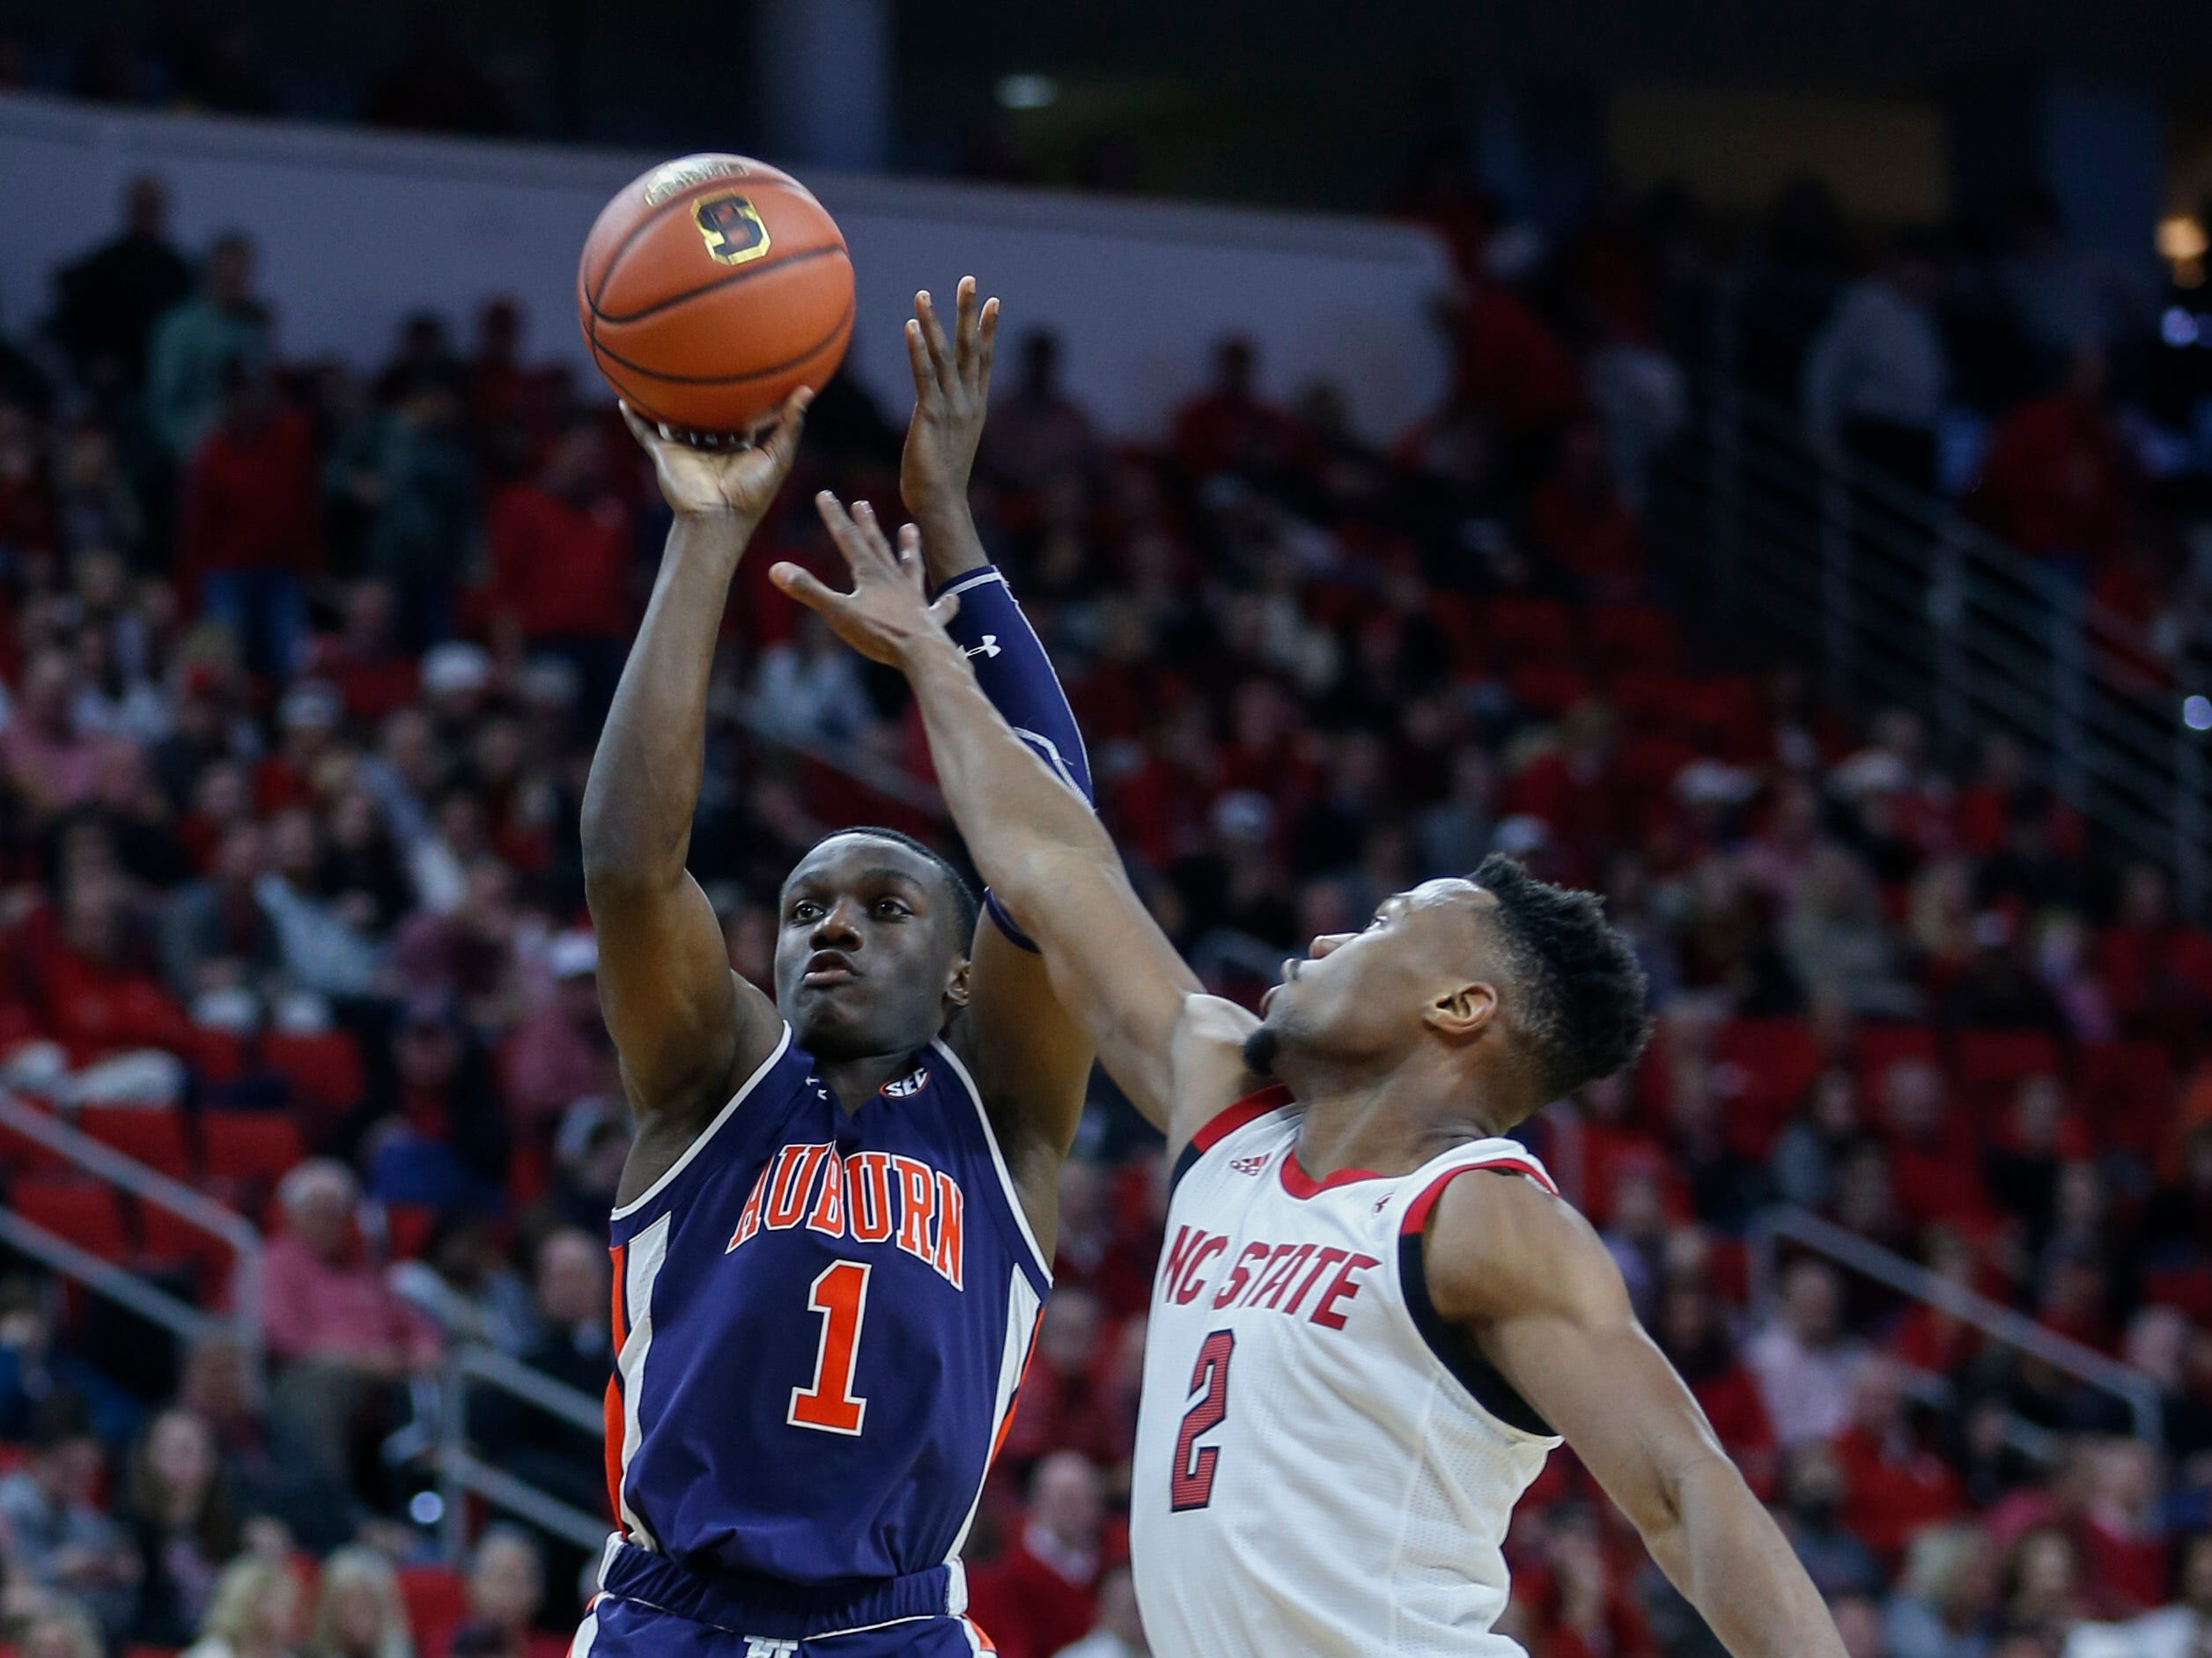 Dec 19, 2018; Raleigh, NC, USA; Auburn Tigers guard Jared Harper (1) shoots against North Carolina State Wolfpack guard Torin Dorn in the second half at PNC Arena. The North Carolina State Wolfpack won 78-71. Mandatory Credit: Nell Redmond-USA TODAY Sports